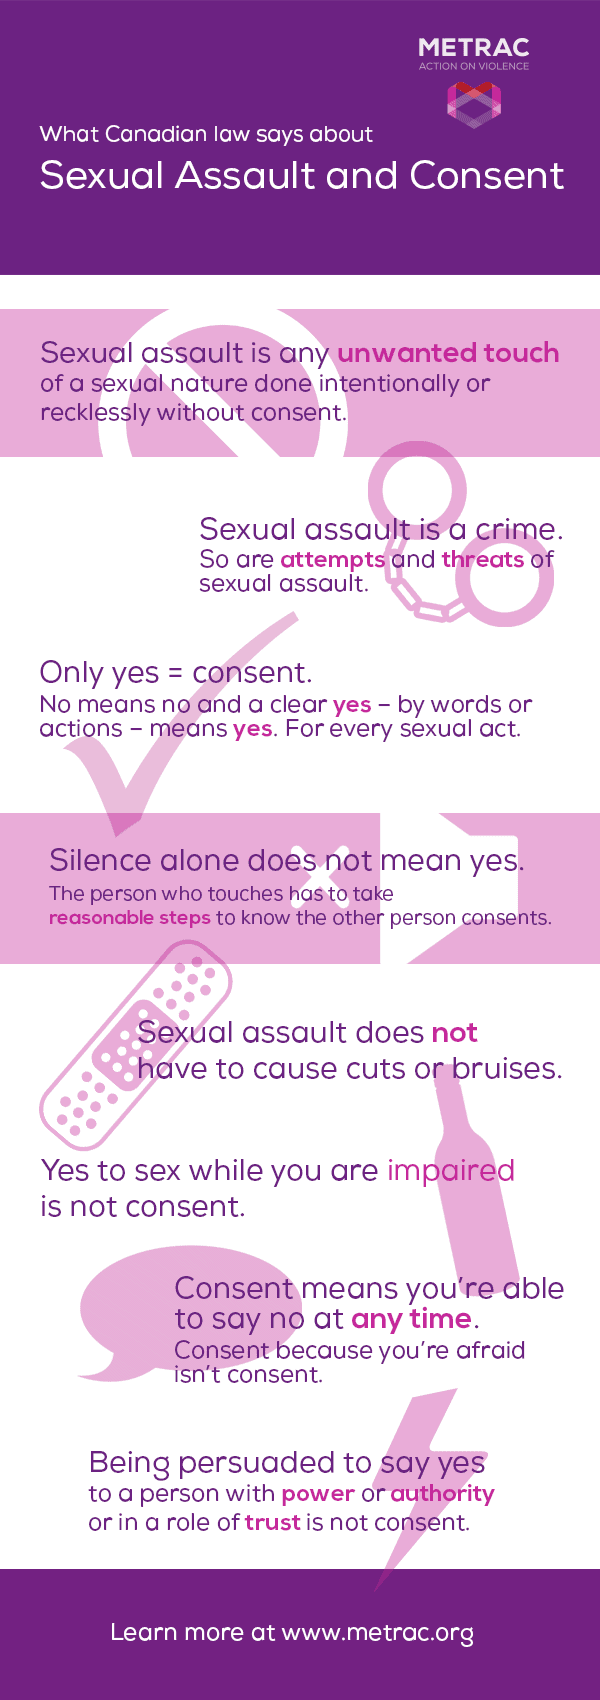 sexual.assault.law.infographic